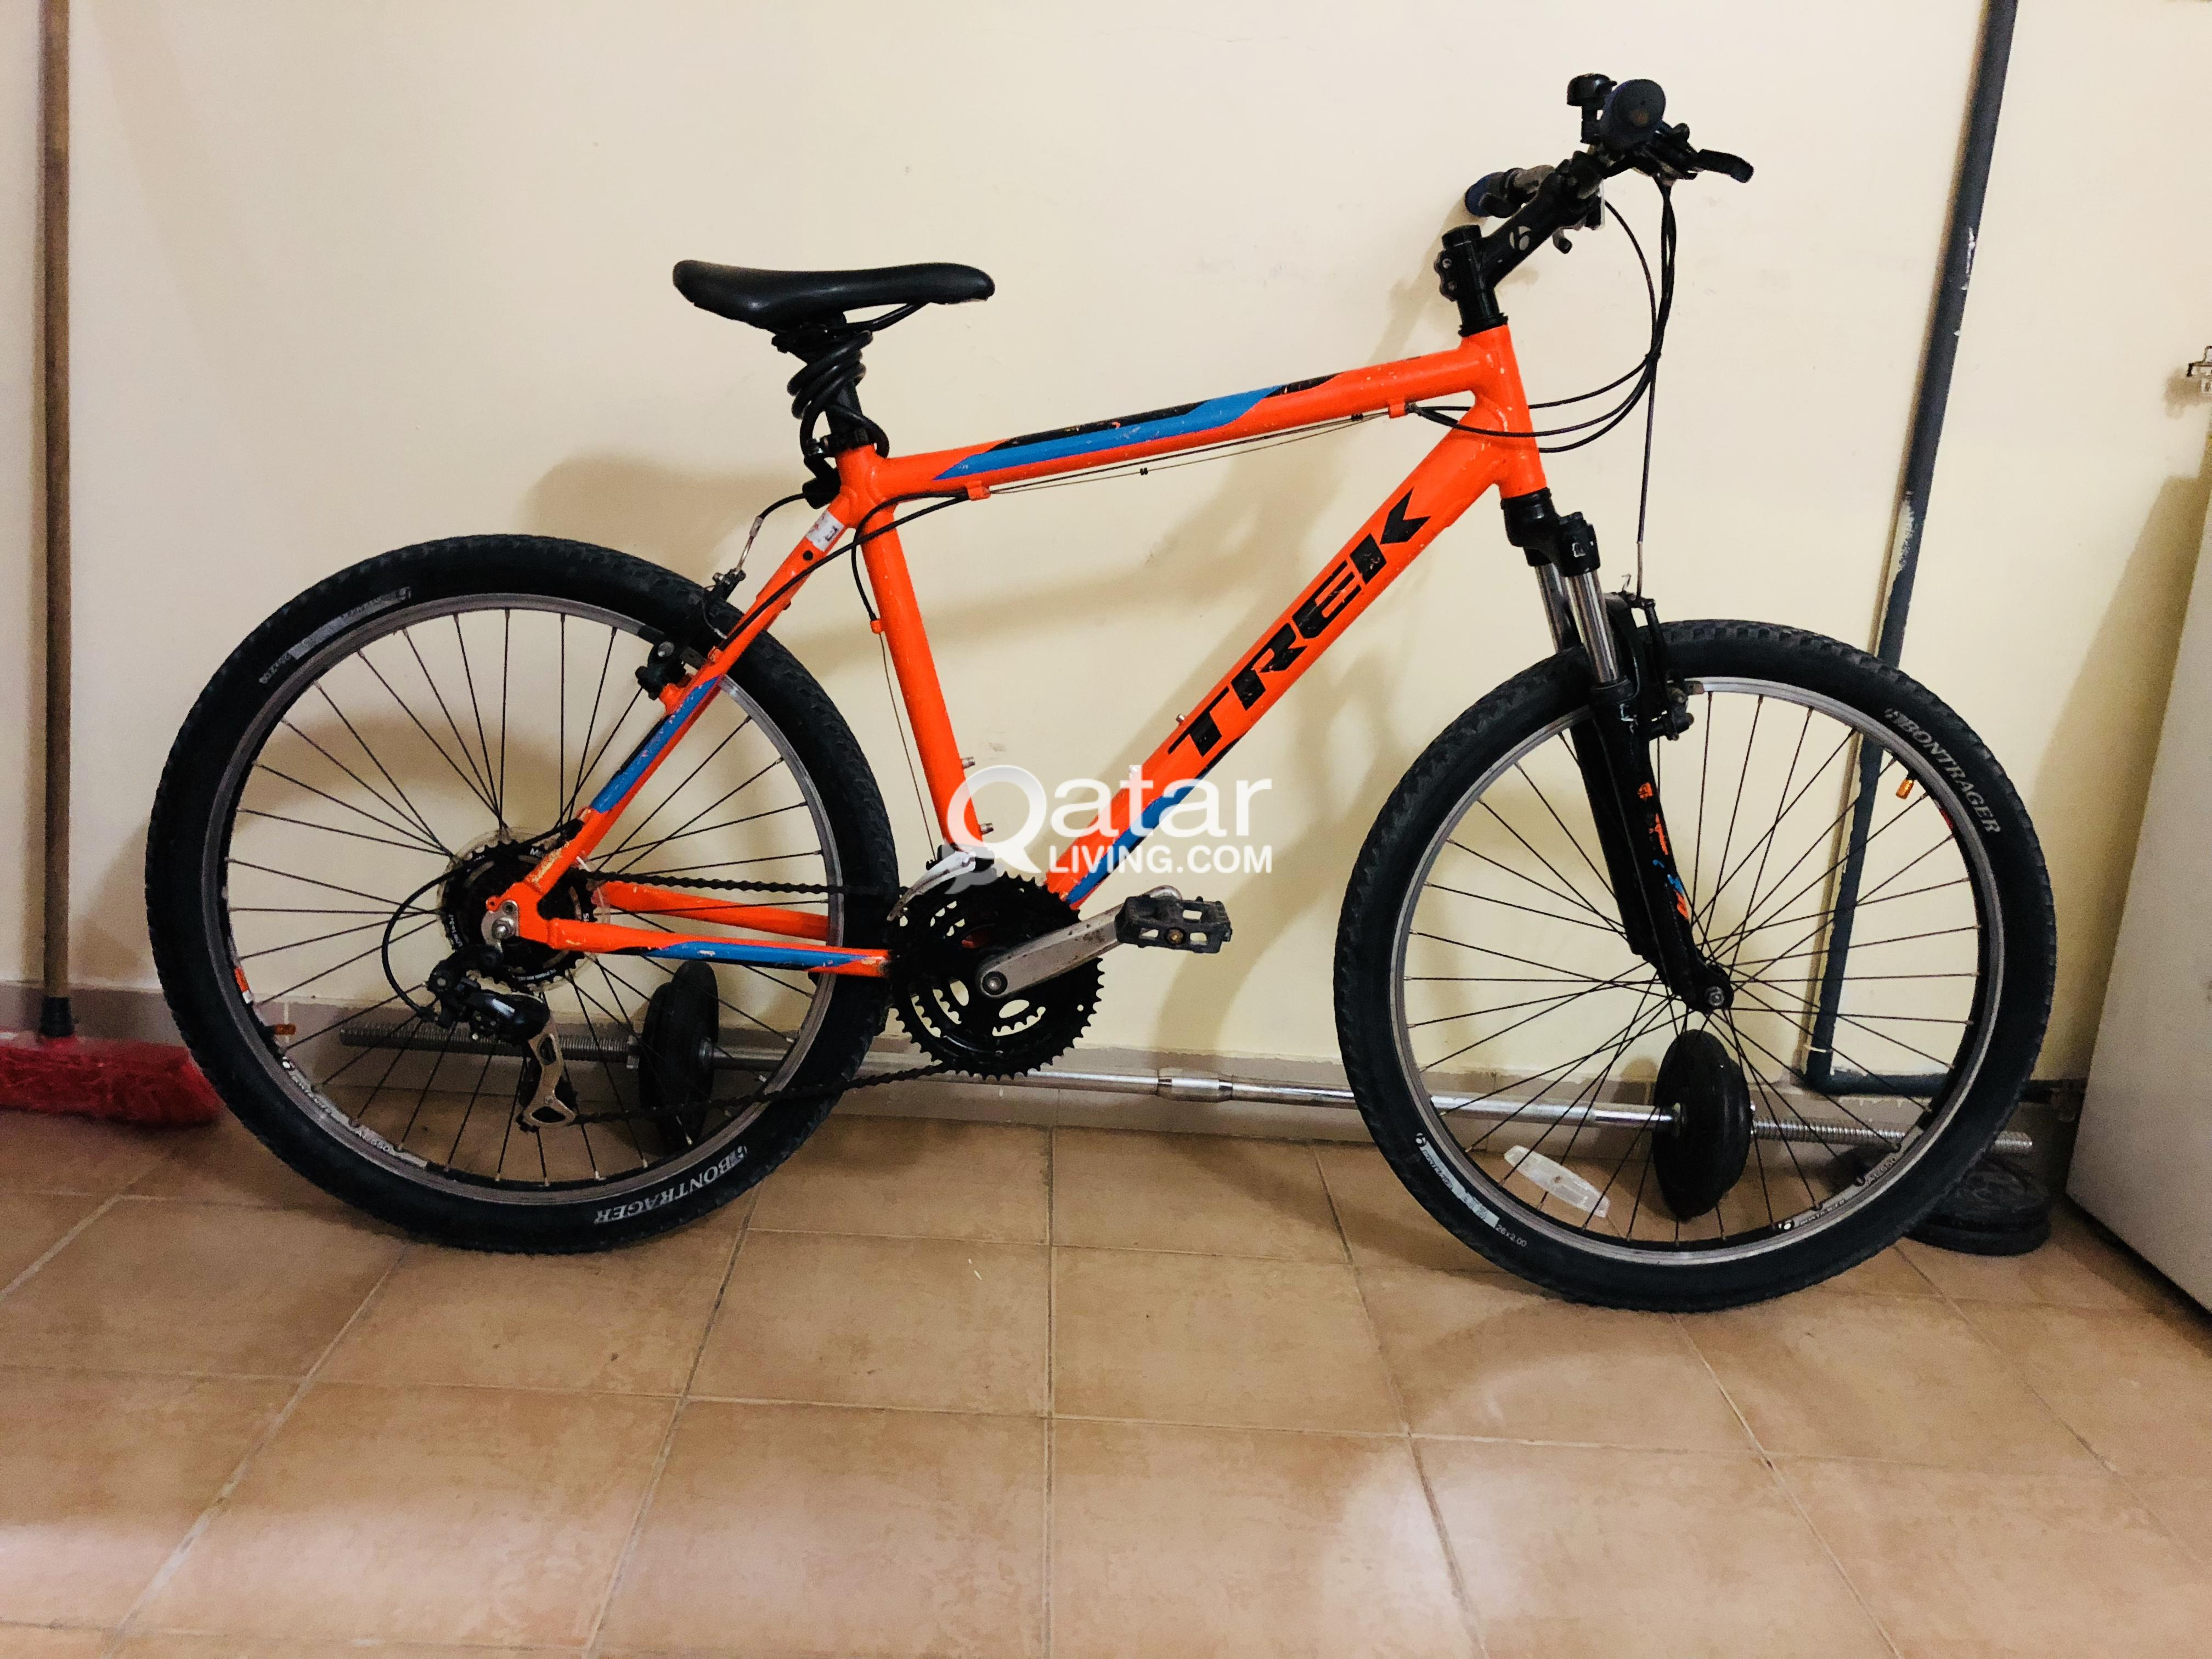 Trek bicycle for sell used candition | Qatar Living